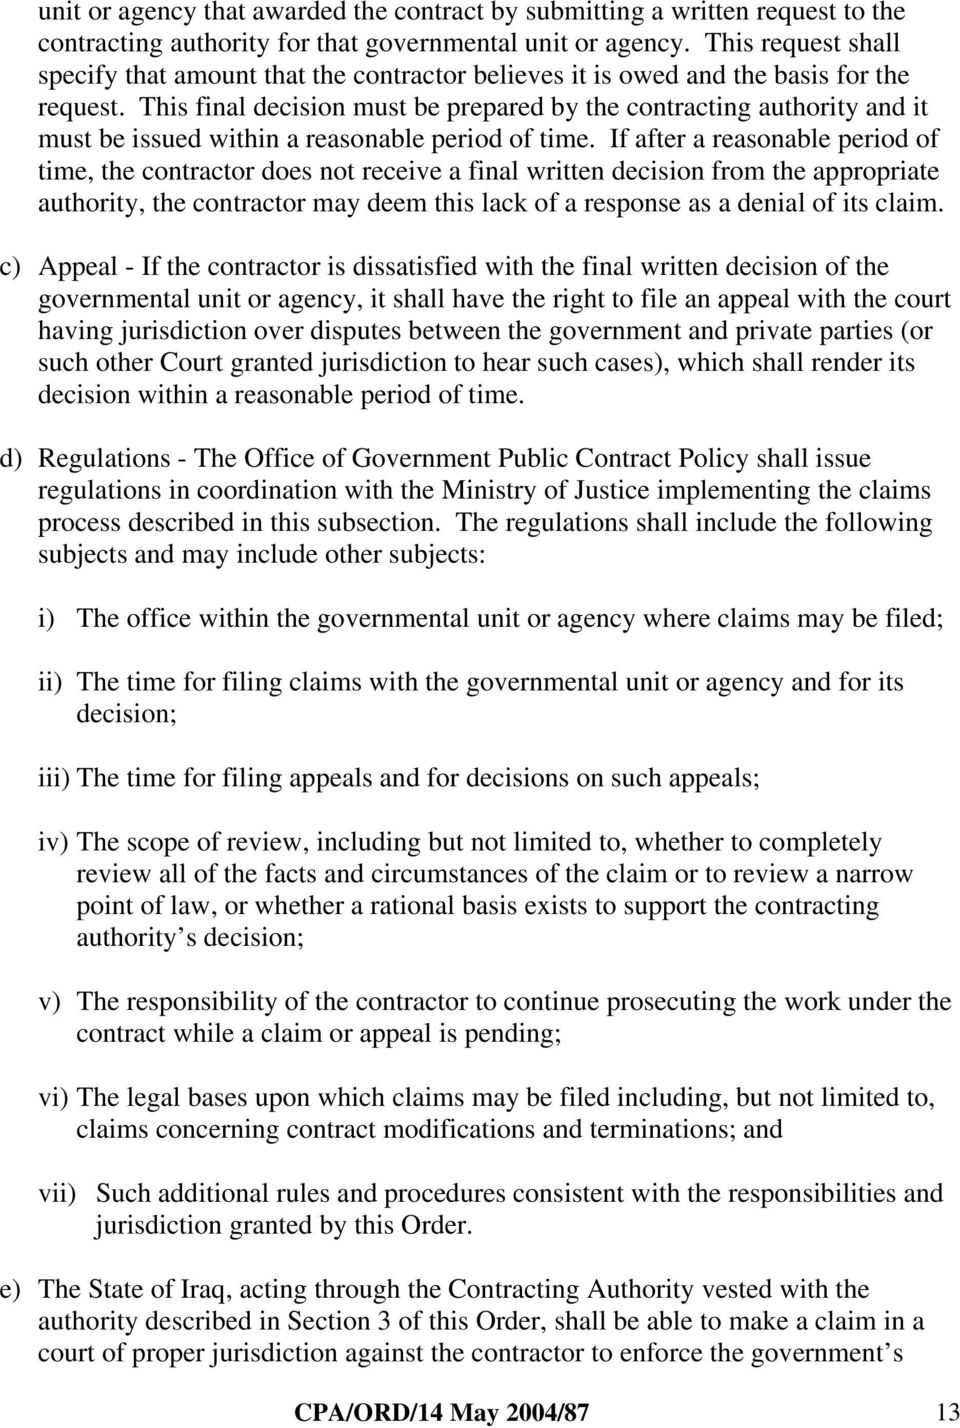 This final decision must be prepared by the contracting authority and it must be issued within a reasonable period of time.